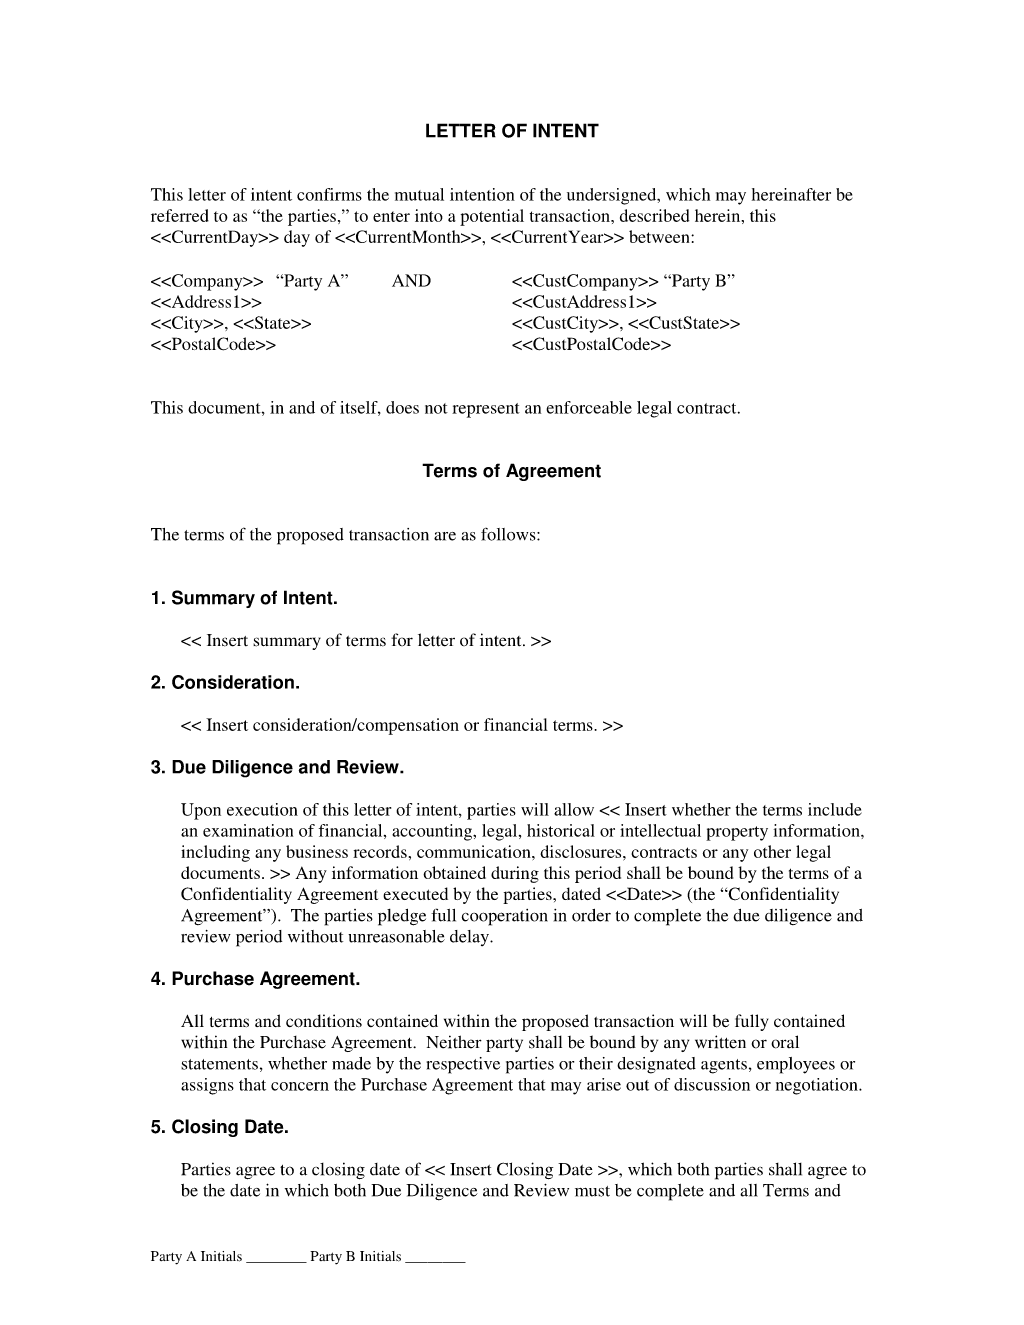 Letter Of Intent Contract Template